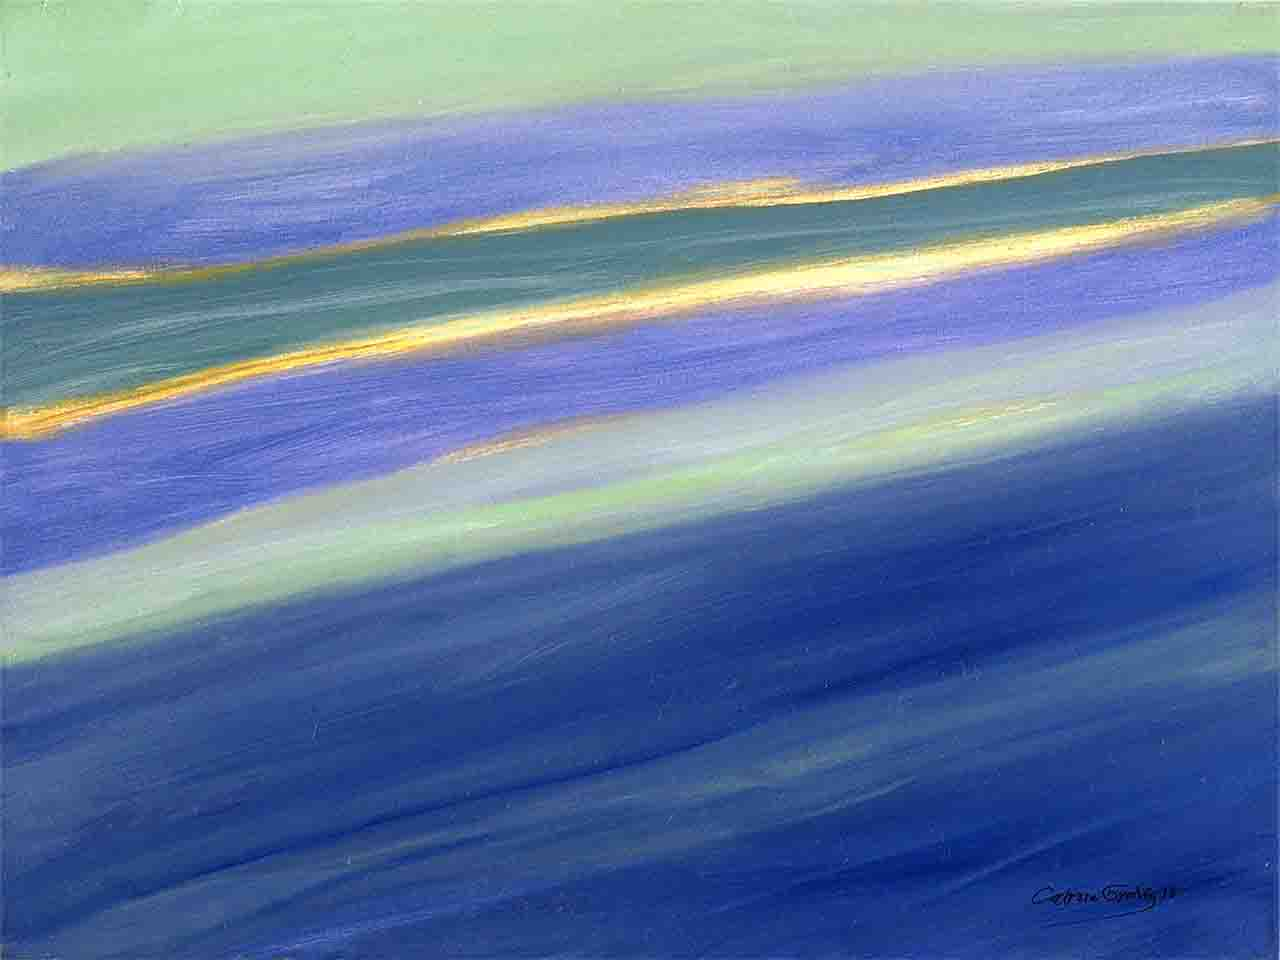 Landscape image of marine abstraction that makes us rest our eyes when we see the diagonal stripes of blue and green tones of a calm sea